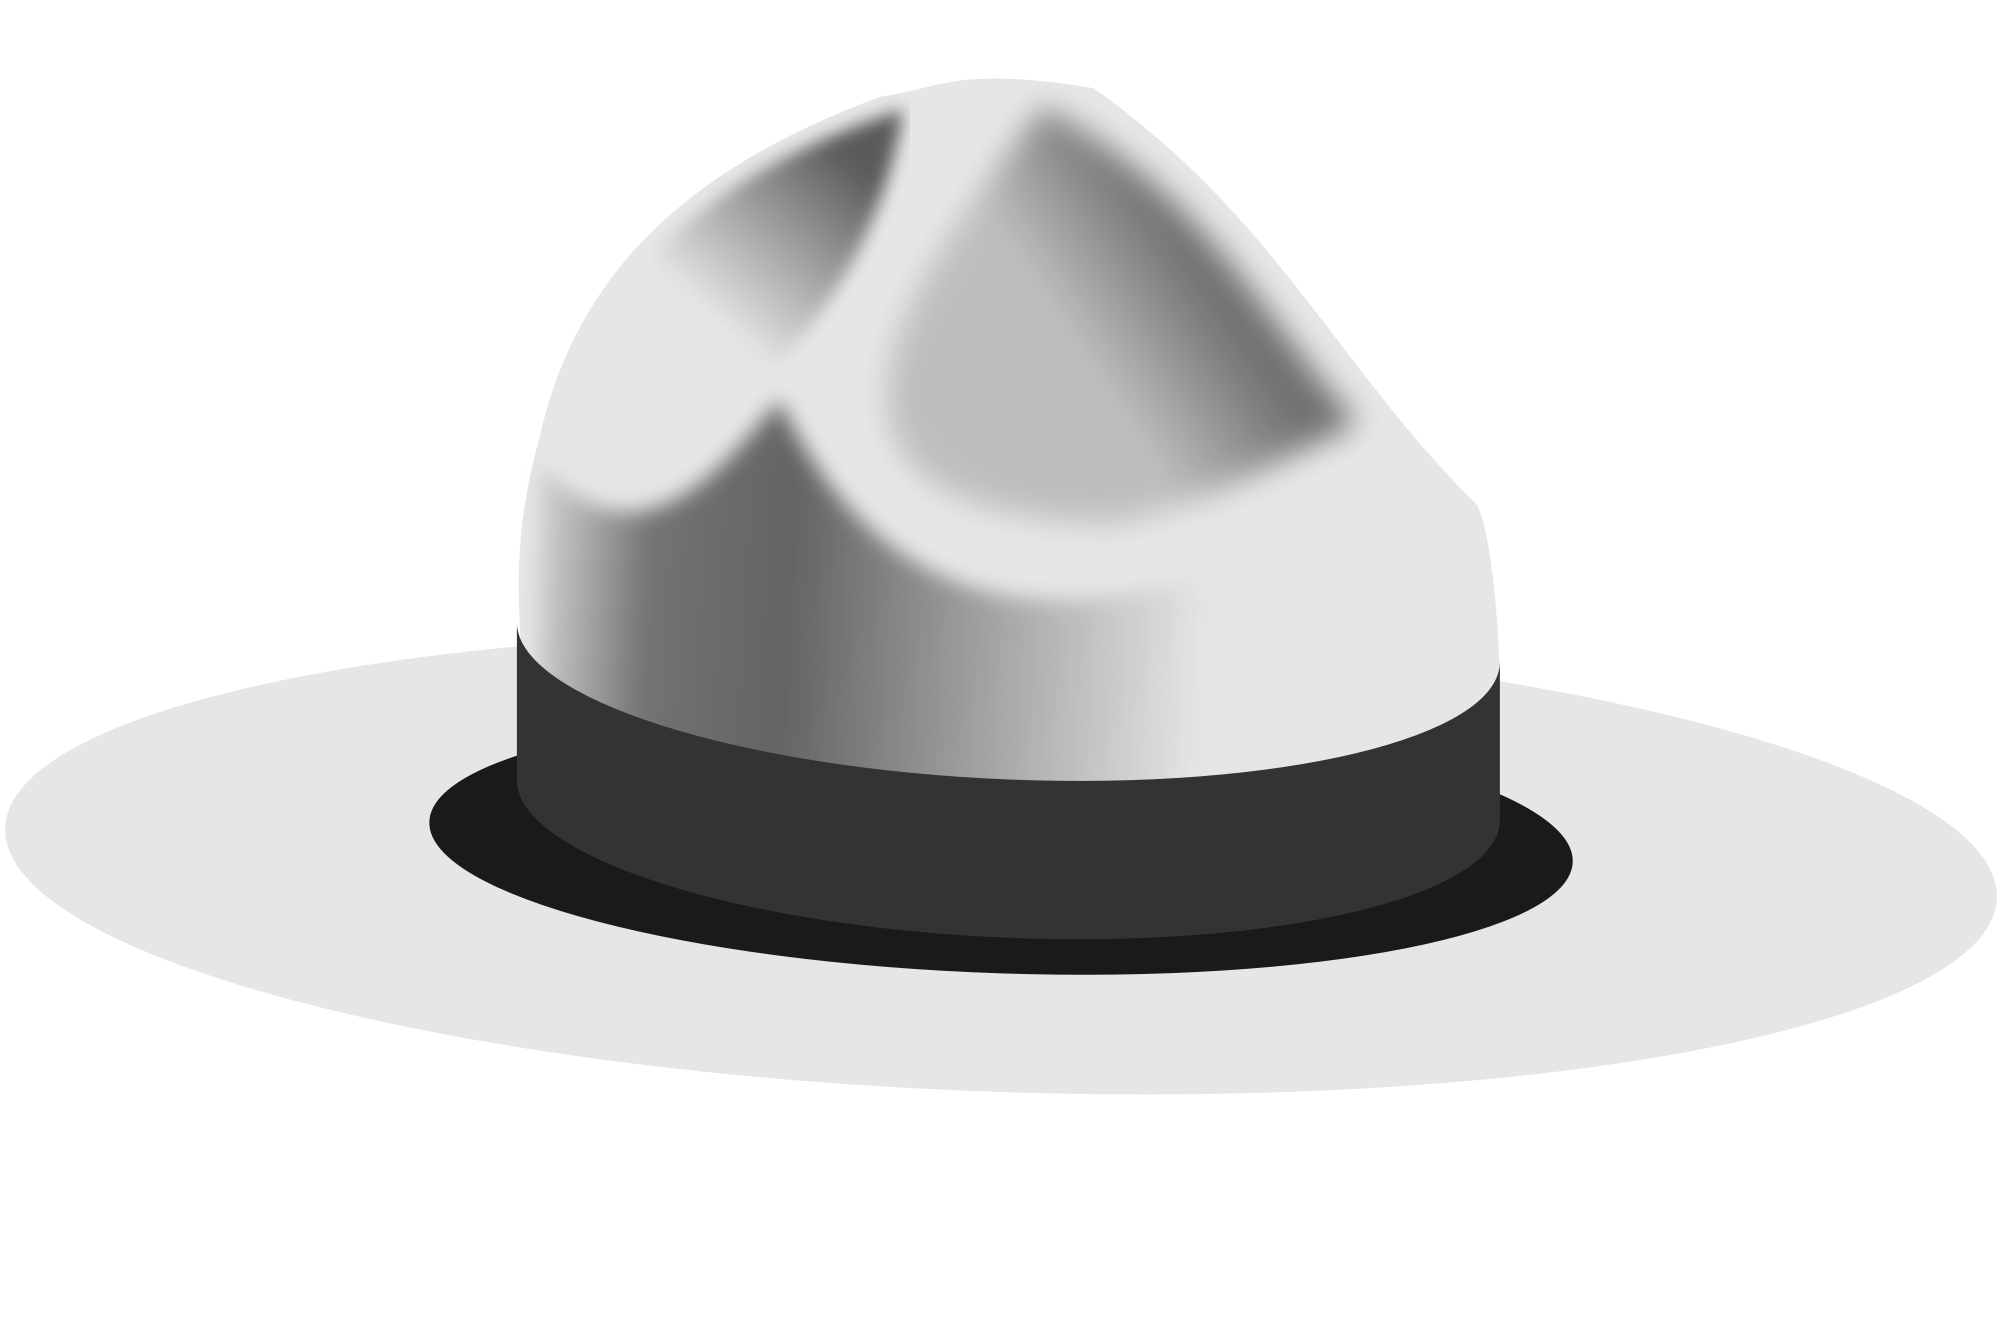 Hat svg black and white. File campaign wikimedia commons